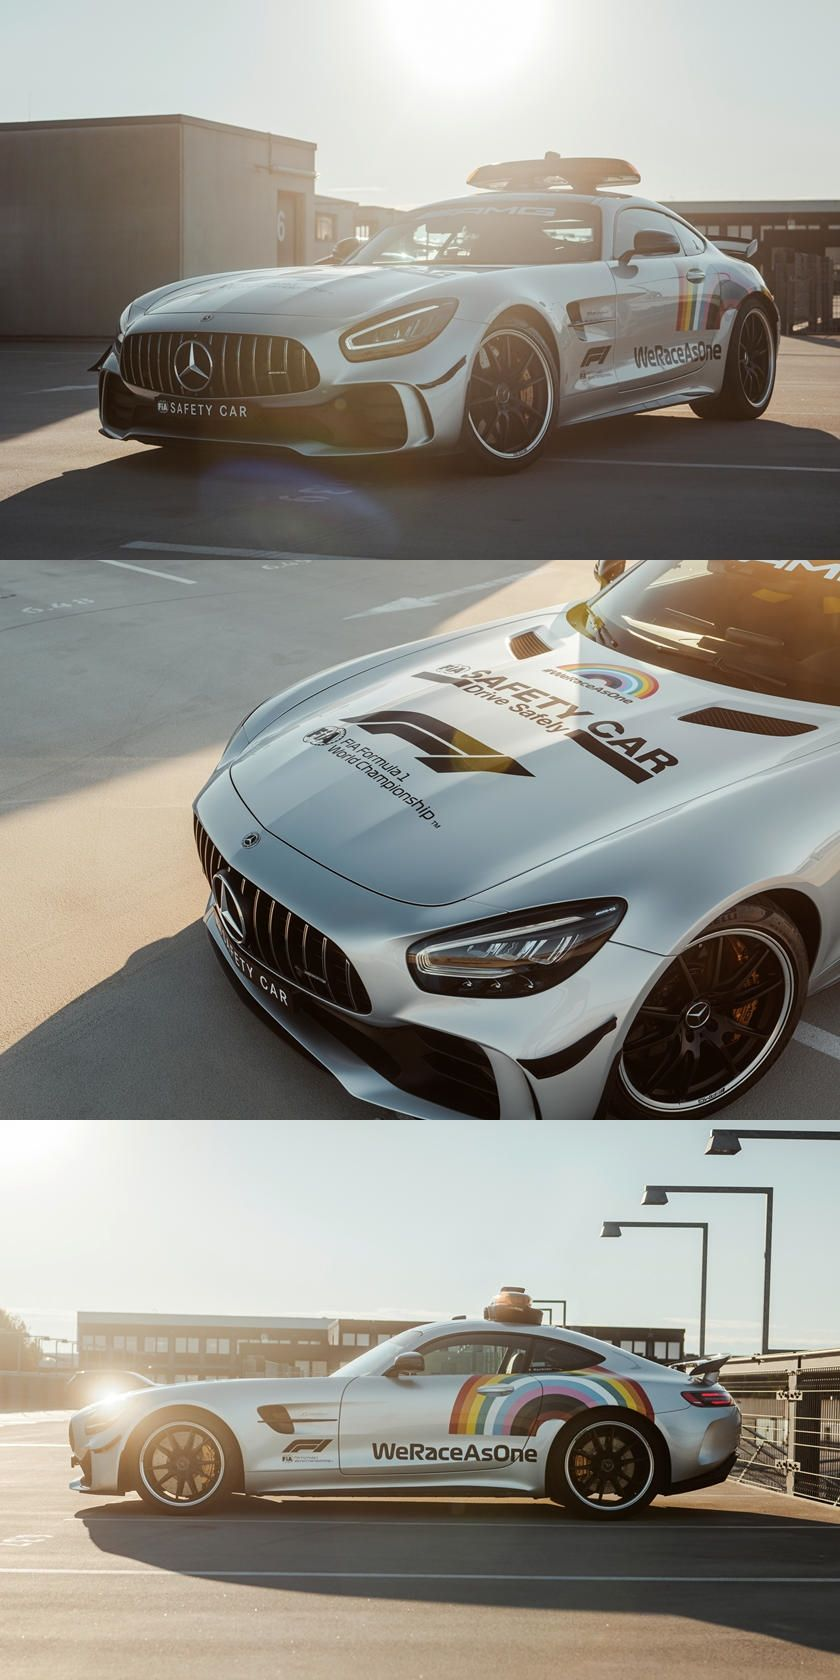 MercedesAMG GT R F1 Safety Car Gets A New Look. This is